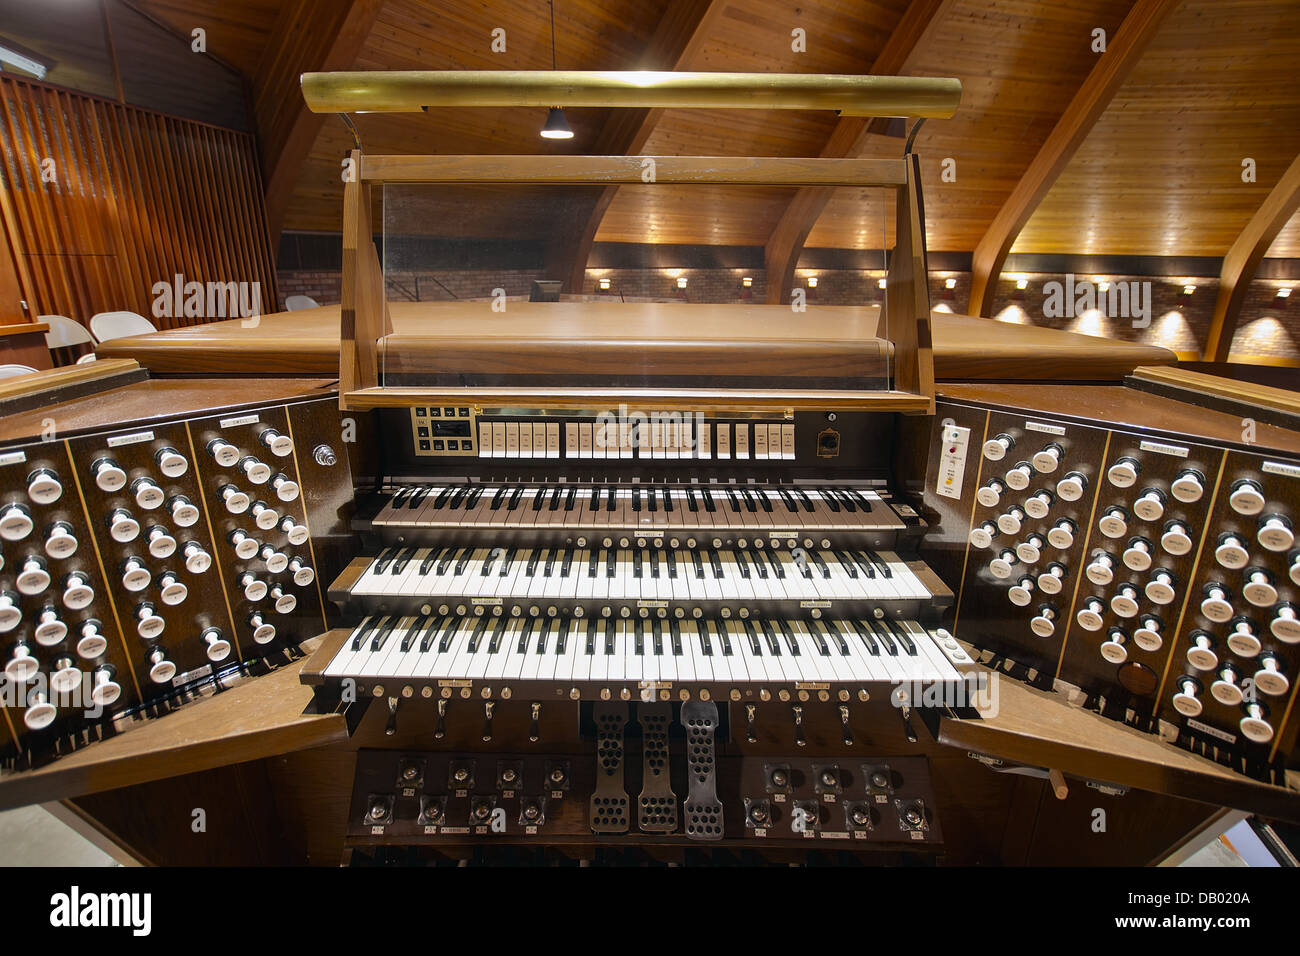 Church Pipe Organ Keyboards Pedalboard and Control Buttons - Stock Image